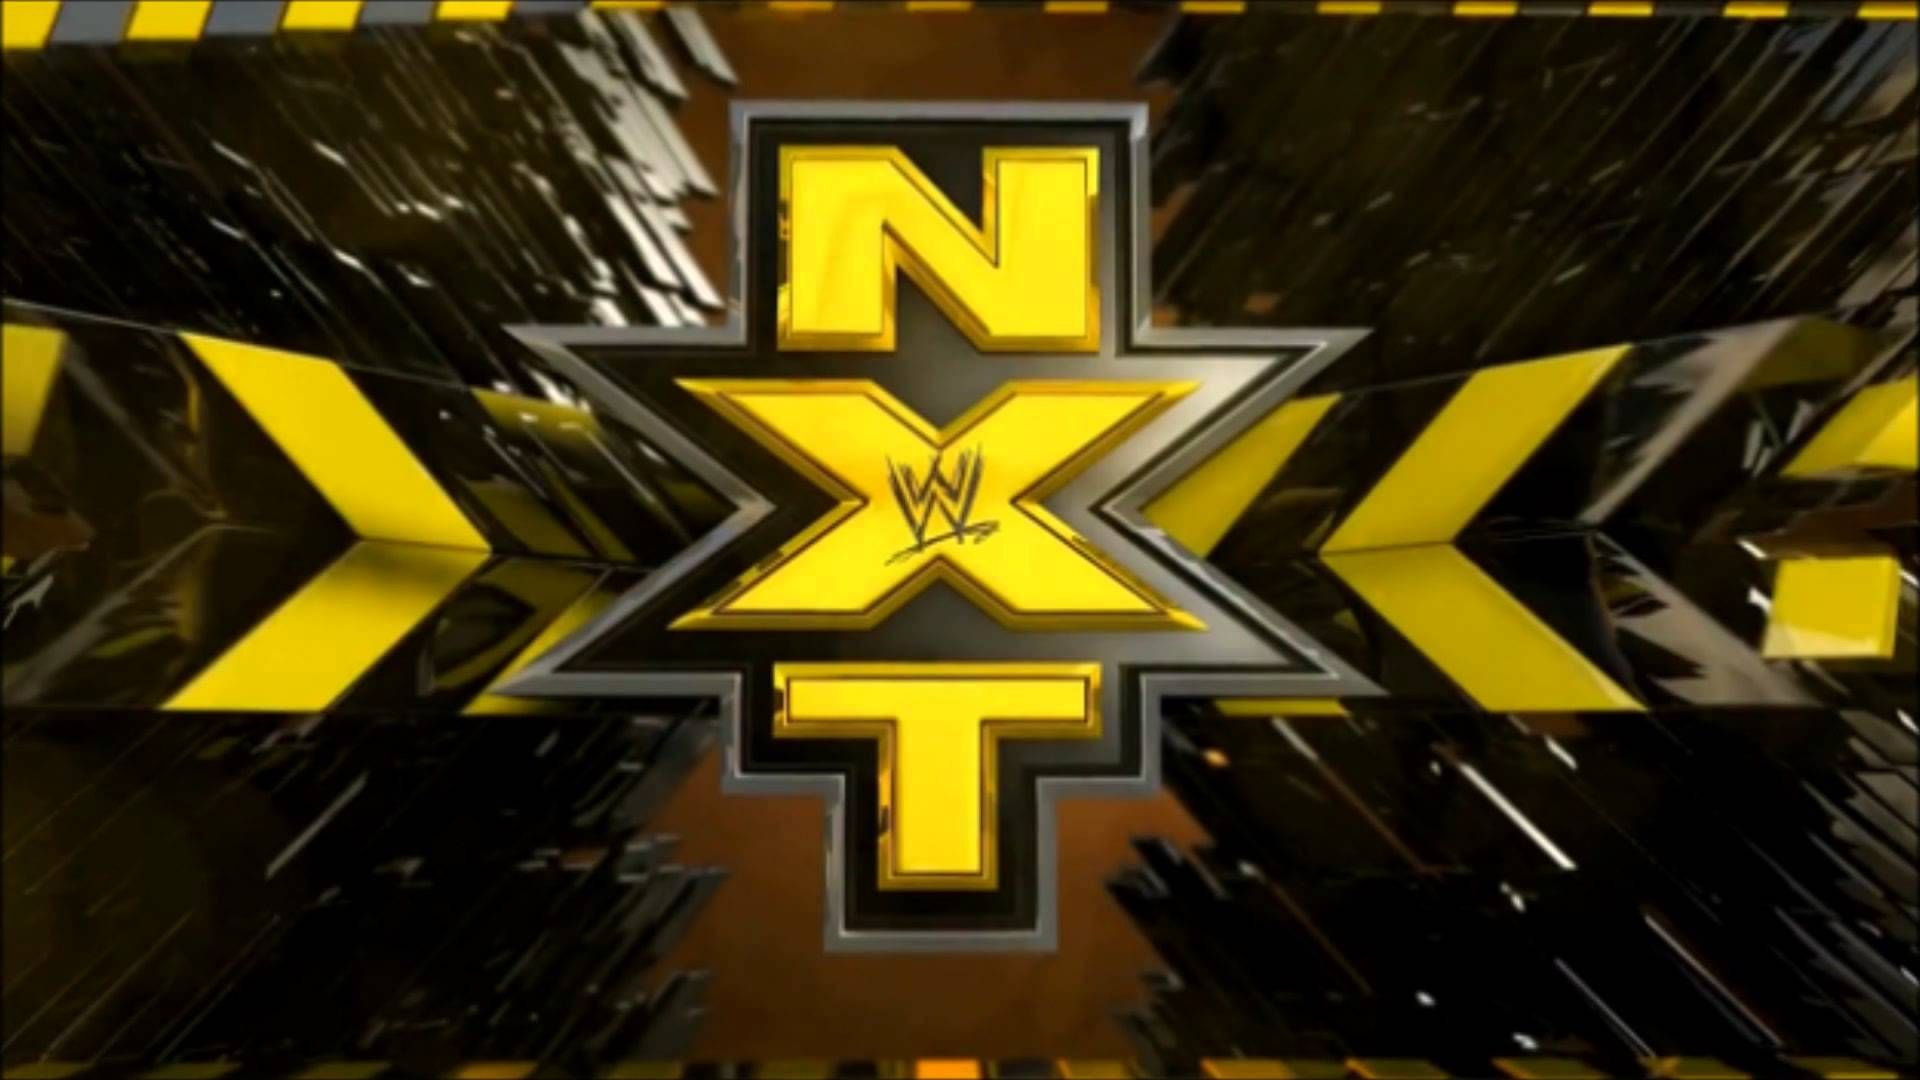 WWE NXT Wallpapers Find Best Latest In HD For Your PC Desktop Background And Mobile Phones